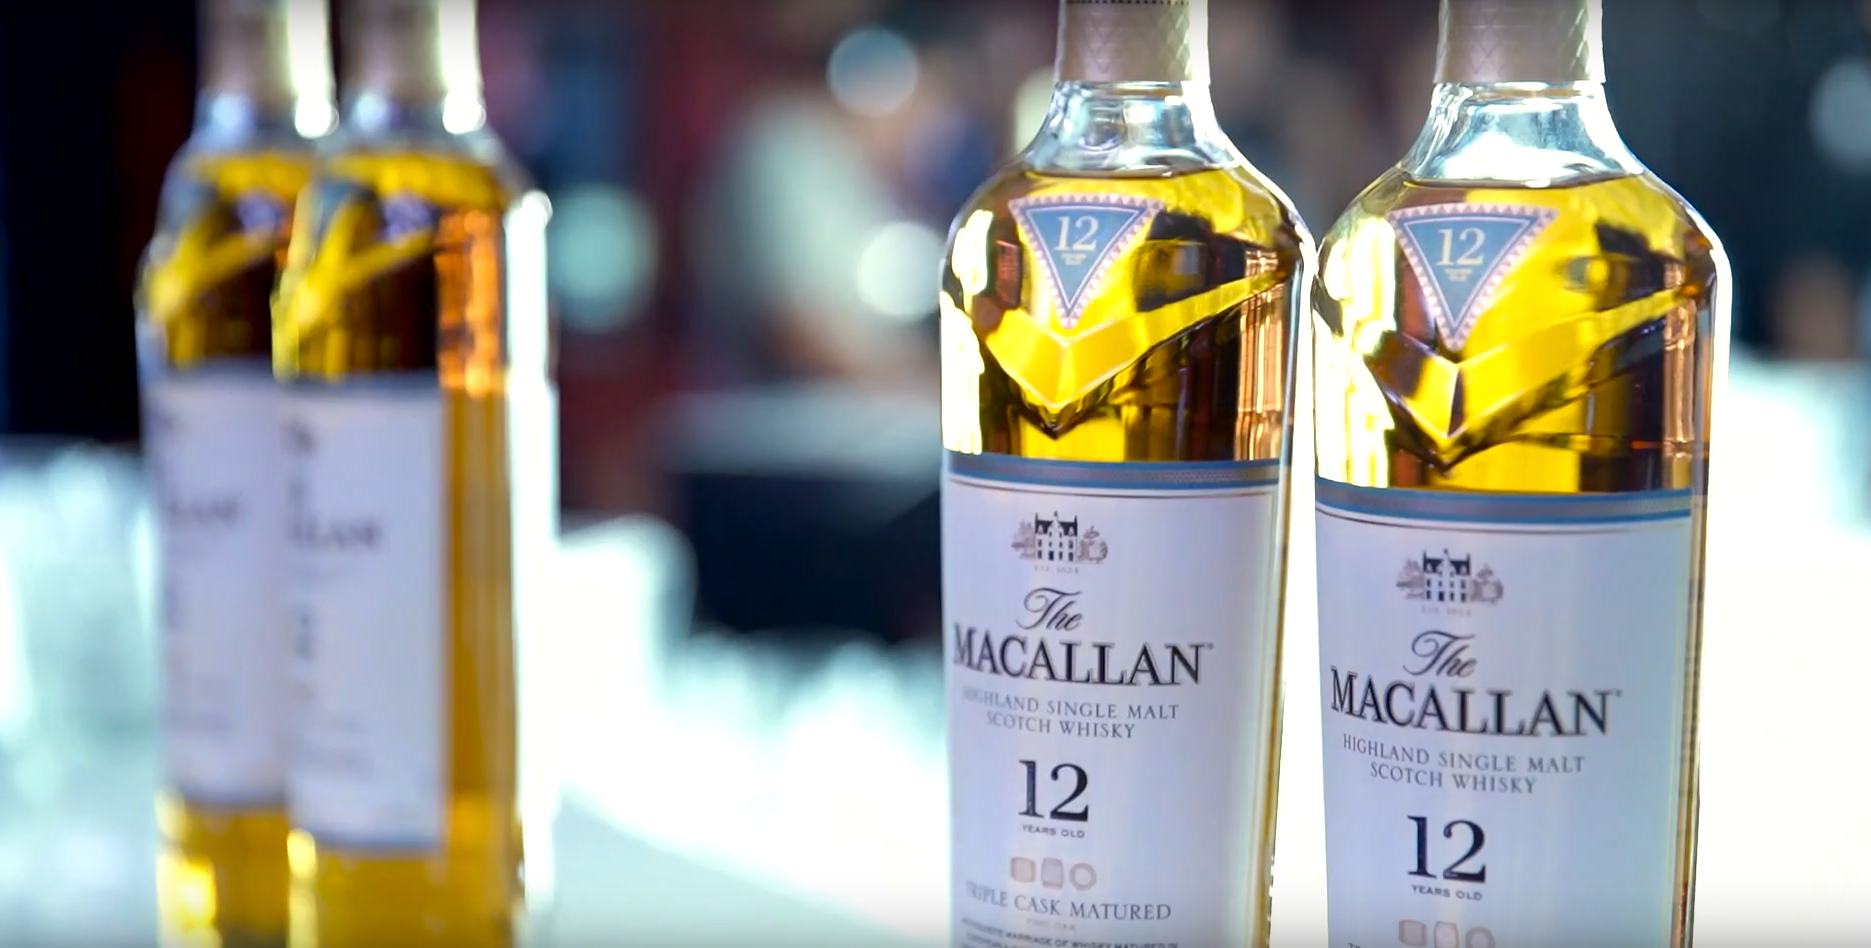 Video: The Macallan At The Hong Kong Tatler Ball 2018